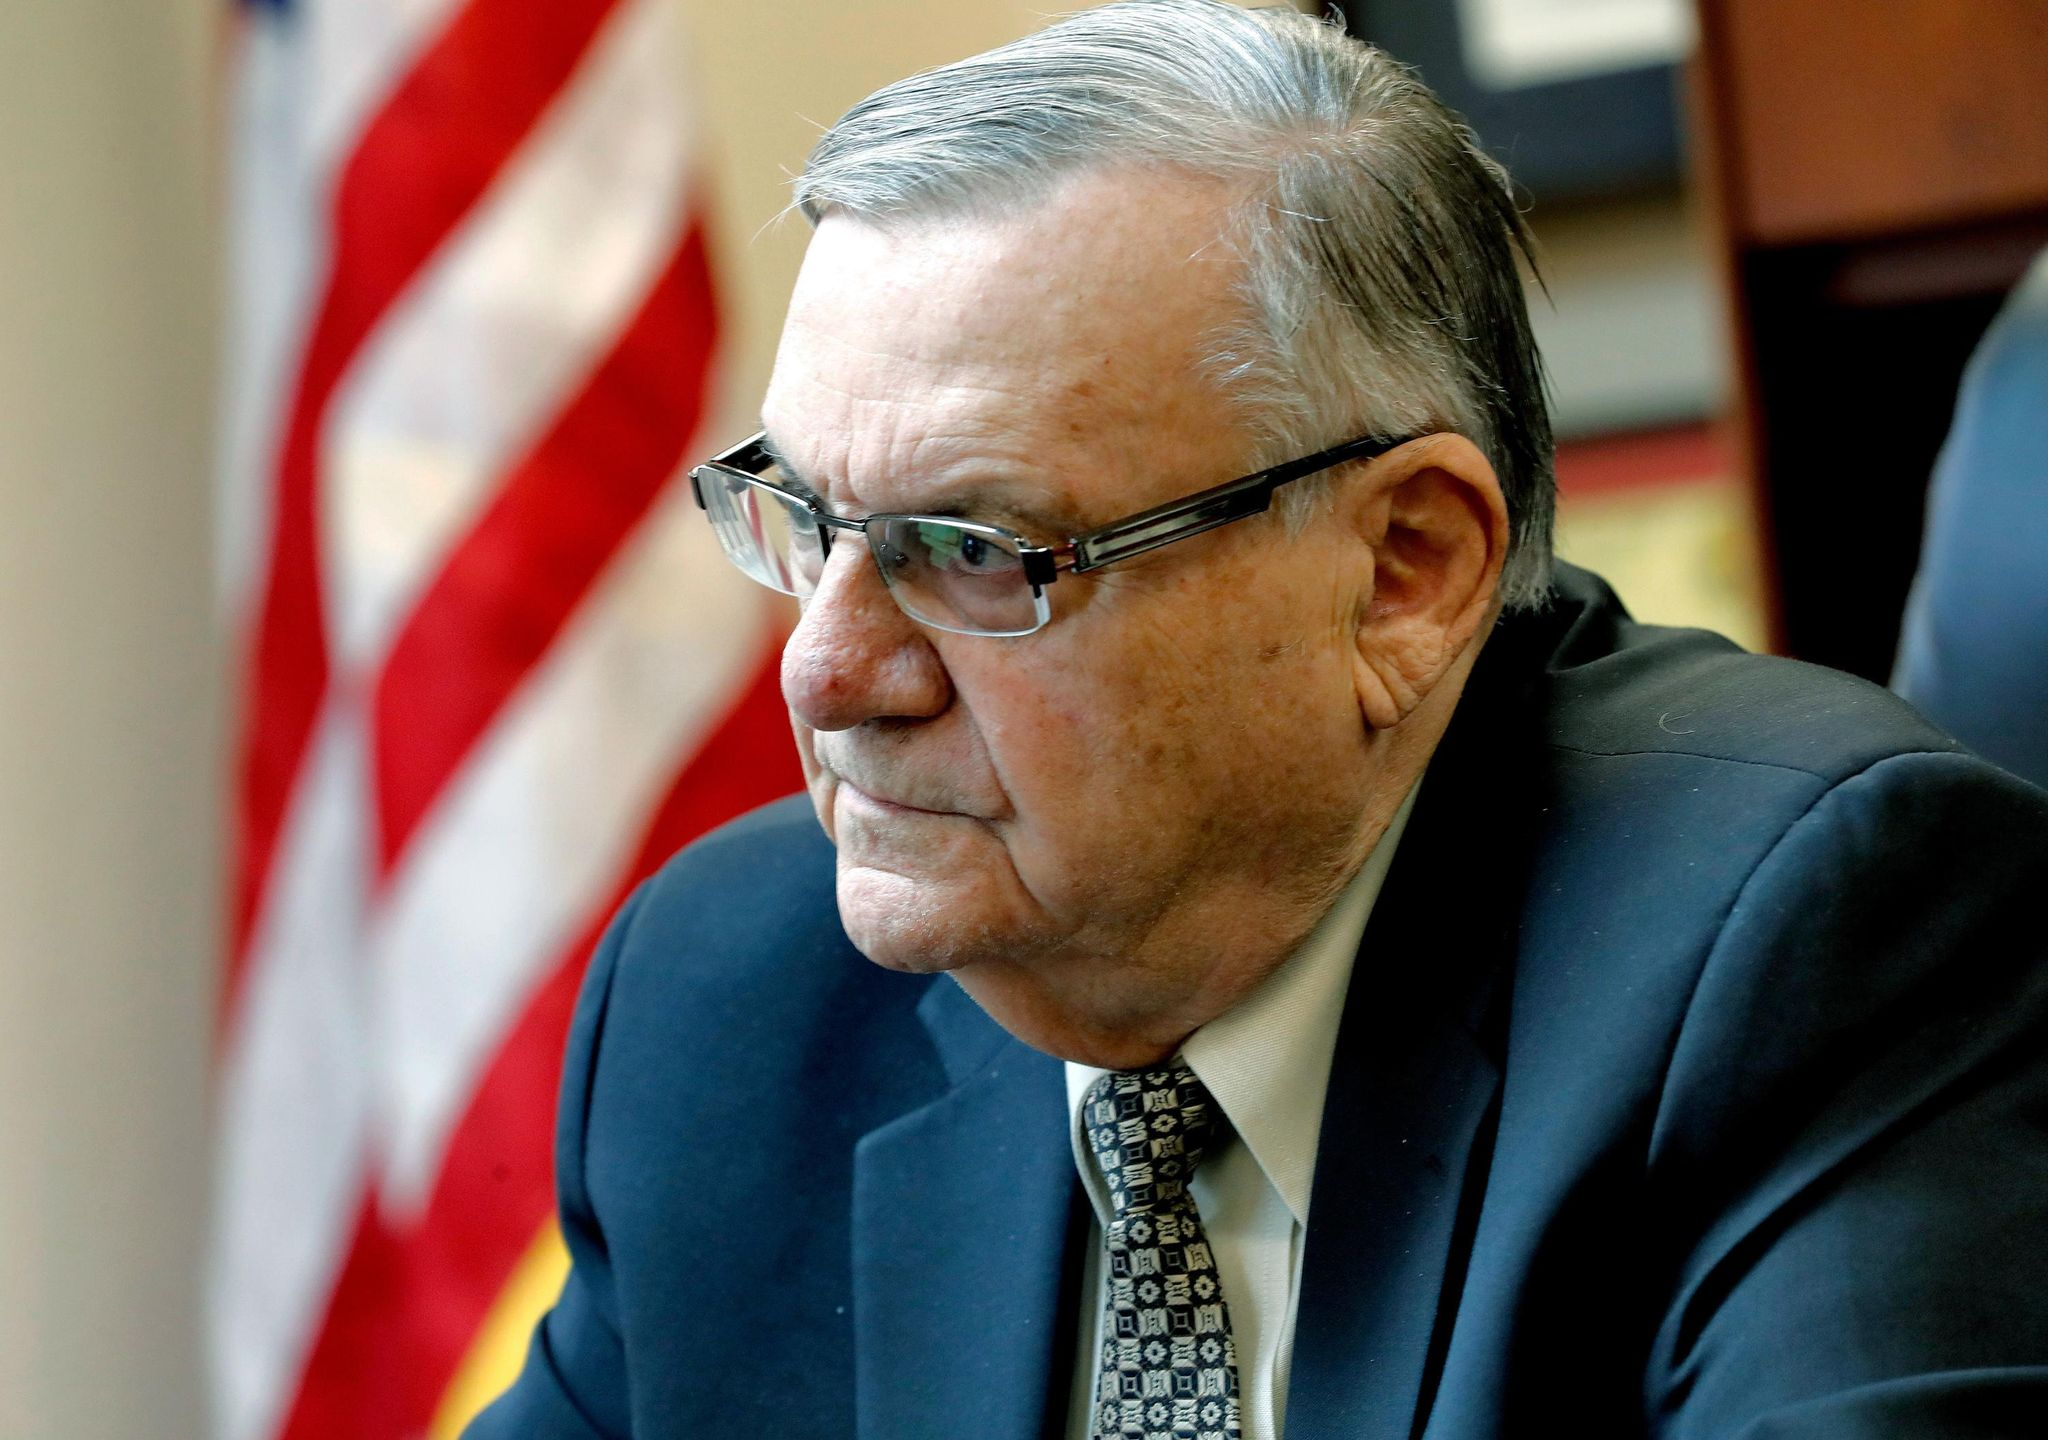 'I want to clear the air': Joe Arpaio says he's not behind 2020 billboards